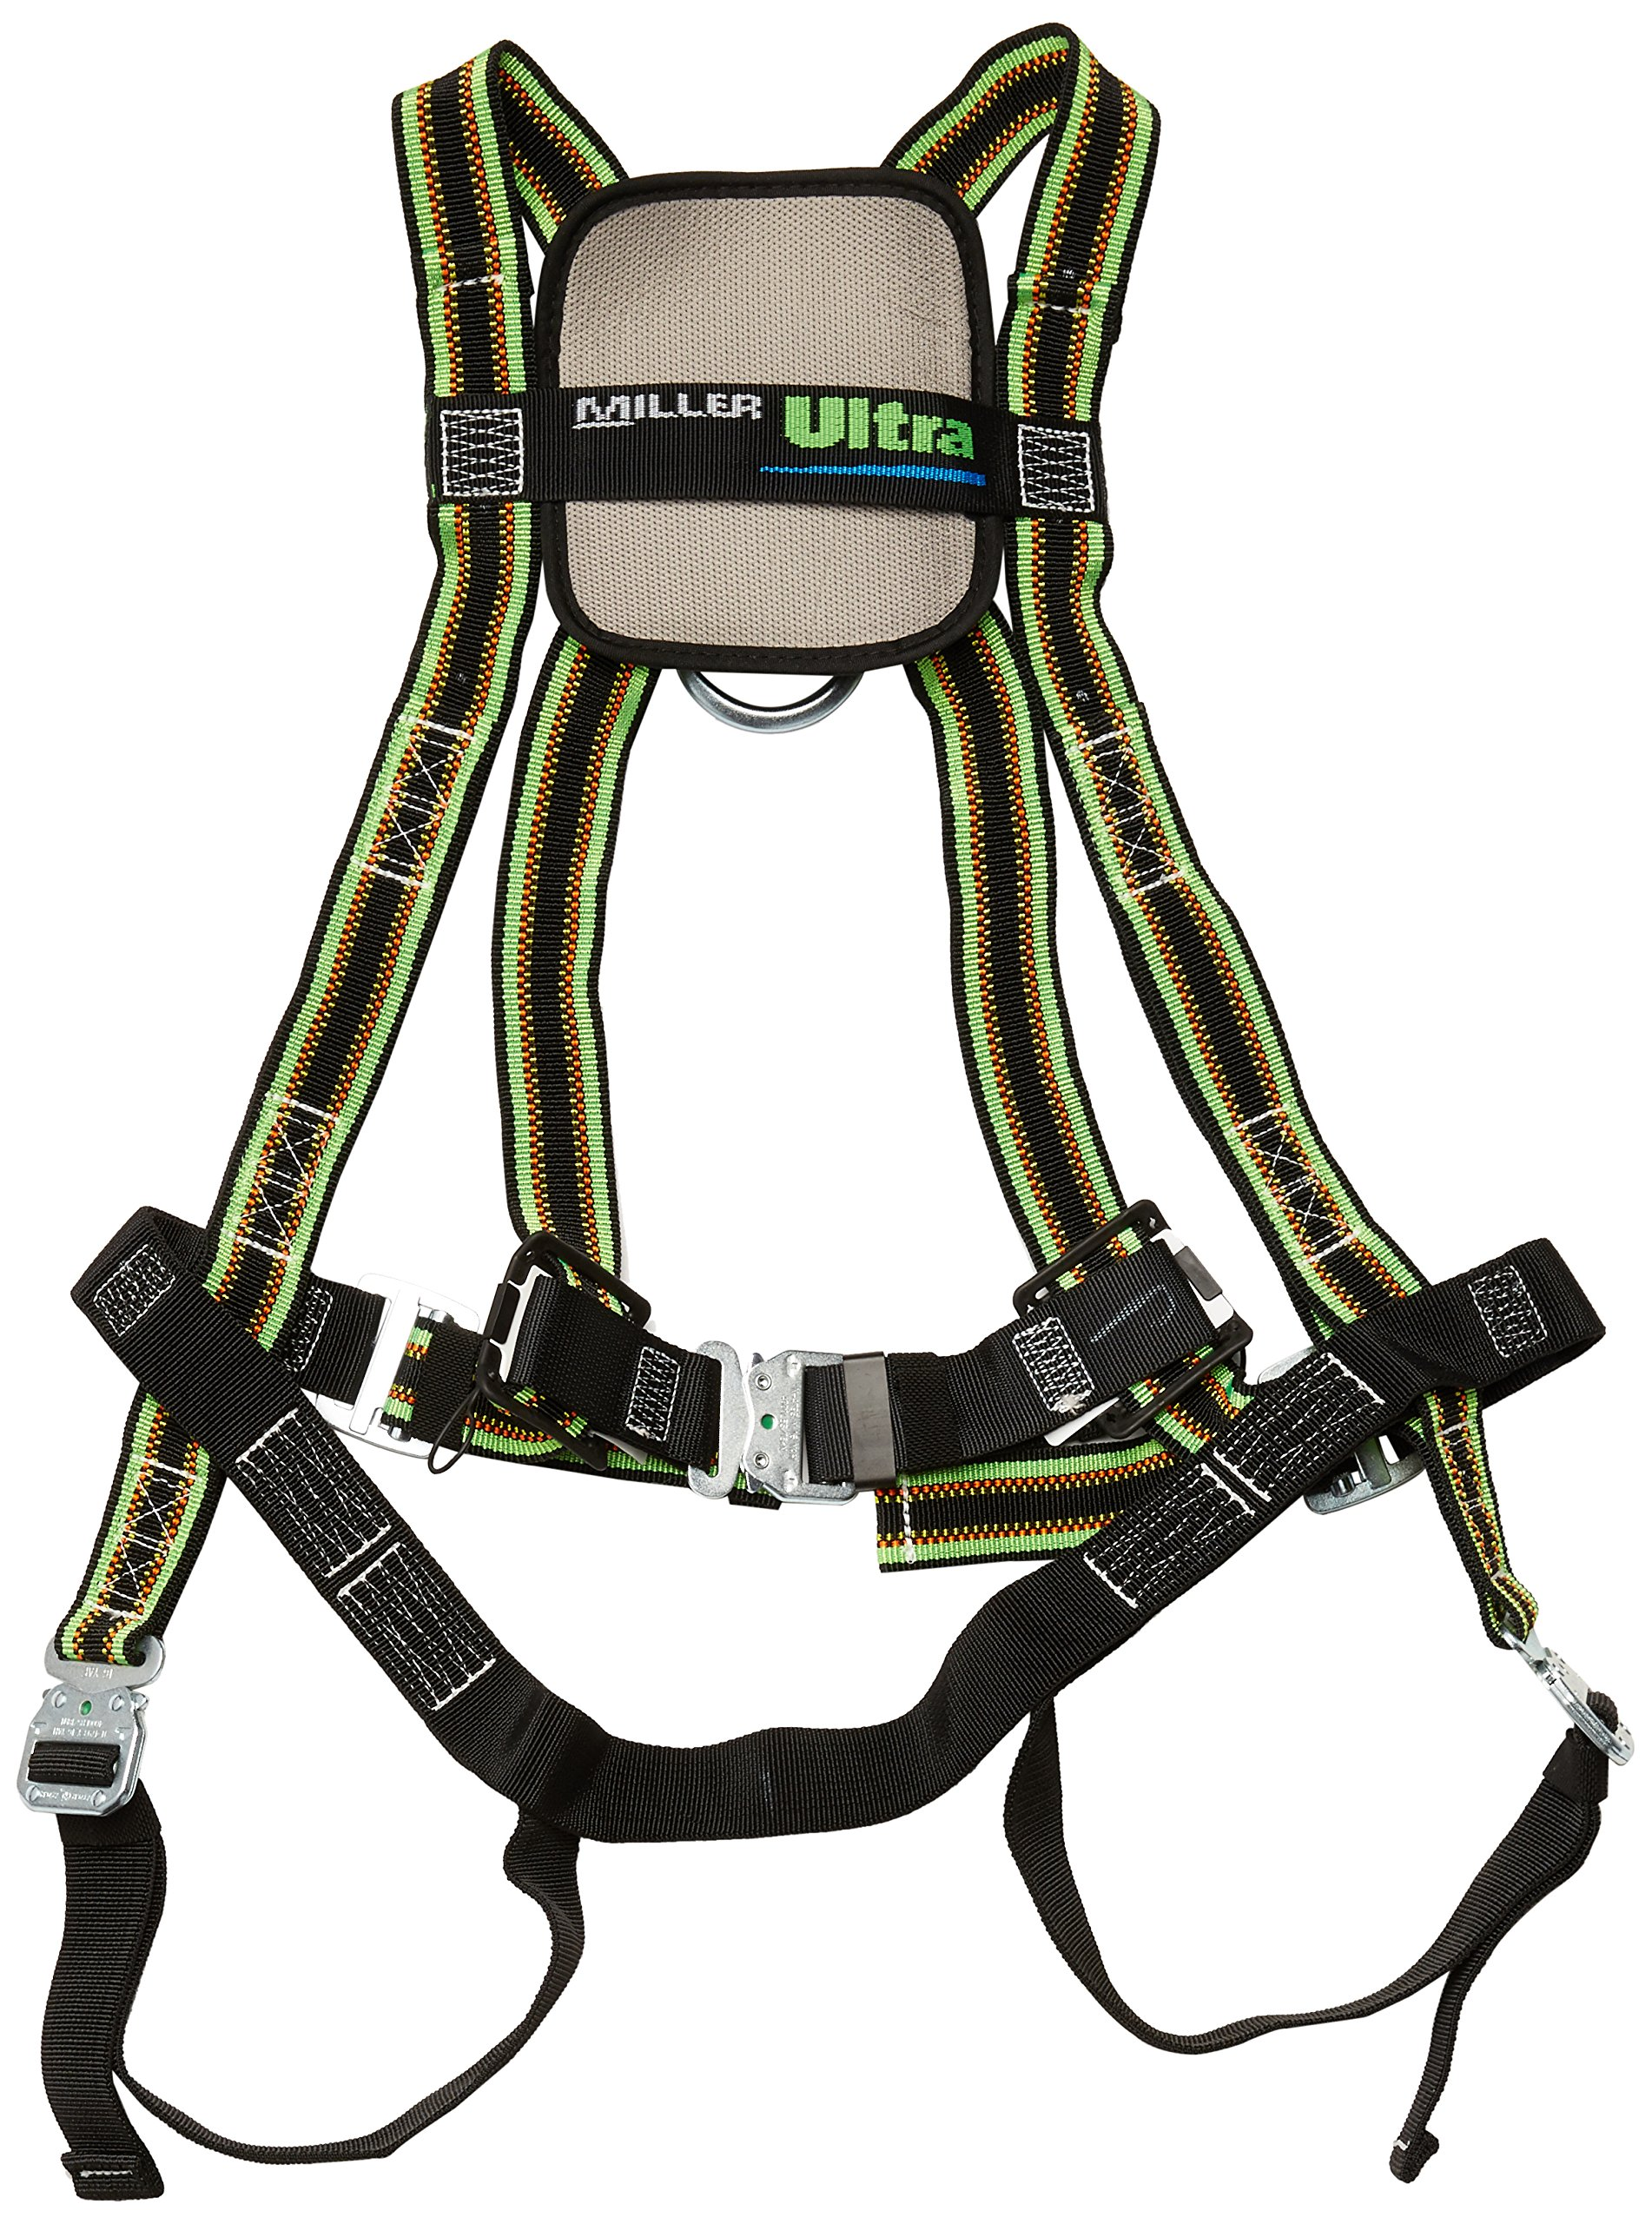 Miller DuraFlex Ultra Stretchable Full Body Safety Harness with Quick-Connect Buckles and Comfort-Touch Back D-Ring Pad, Universal Size-Large/XL, 400 lb. Capacity (E650QC/UGN) by Honeywell